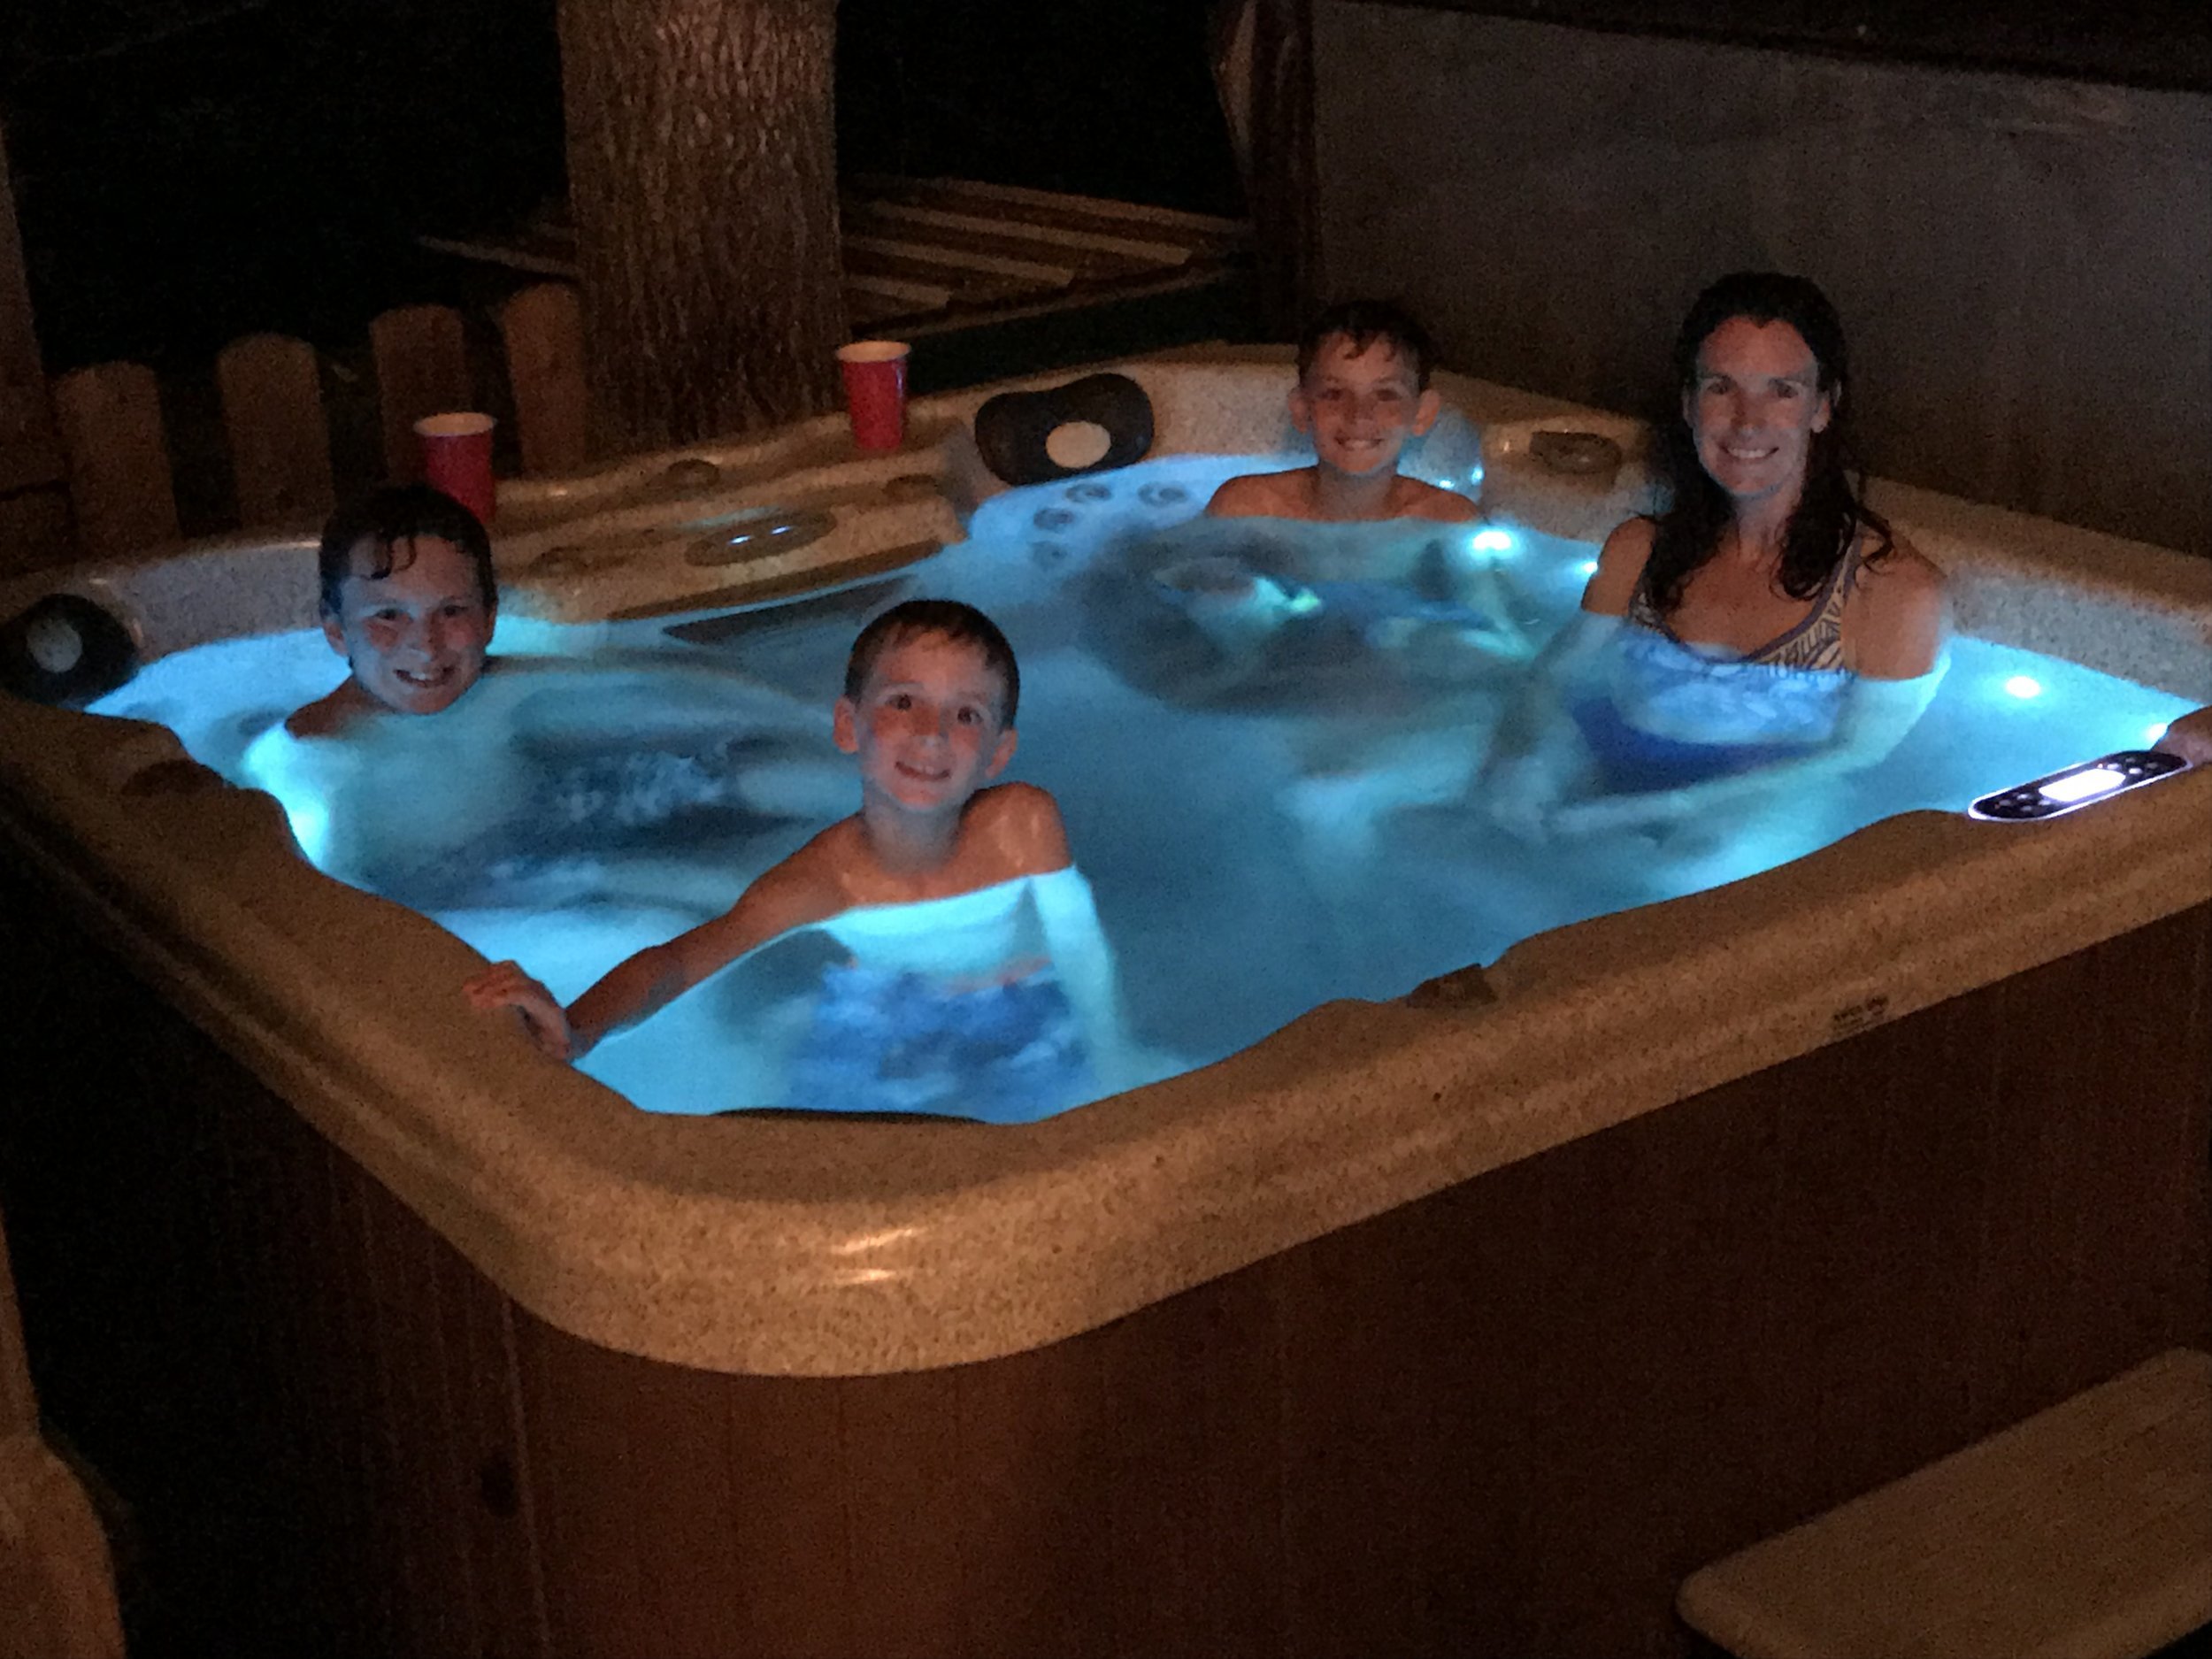 Pretty rough, hugh! Here we are enjoying the hot tub at Tim and Kathy's house in Rocheport, MO.